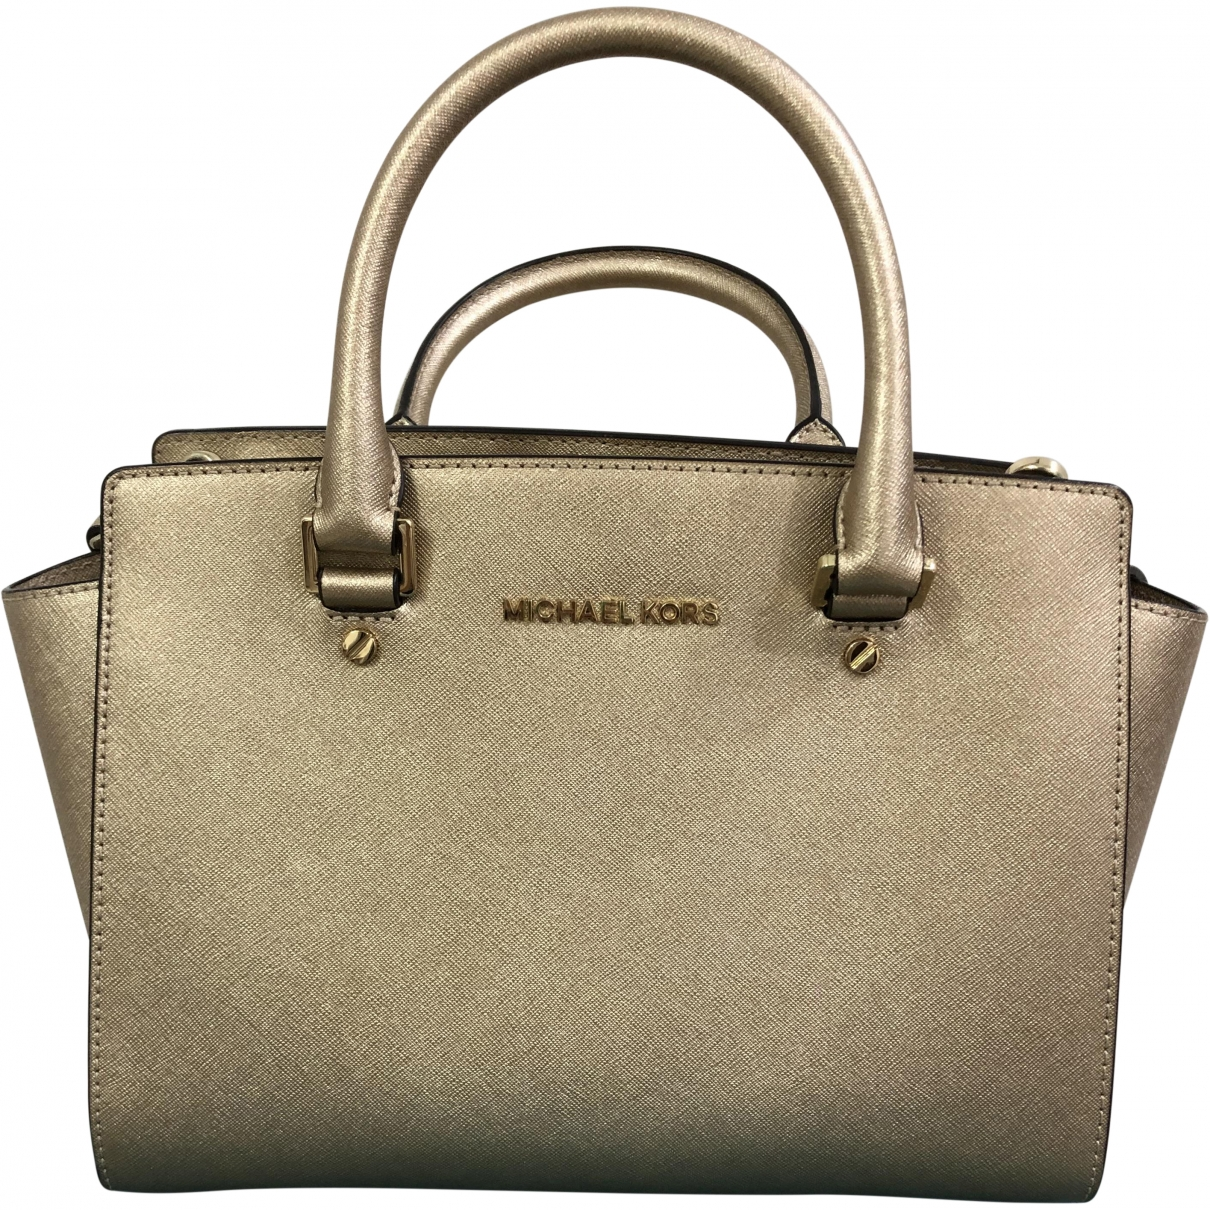 Michael Kors Selma Gold Leather handbag for Women \N